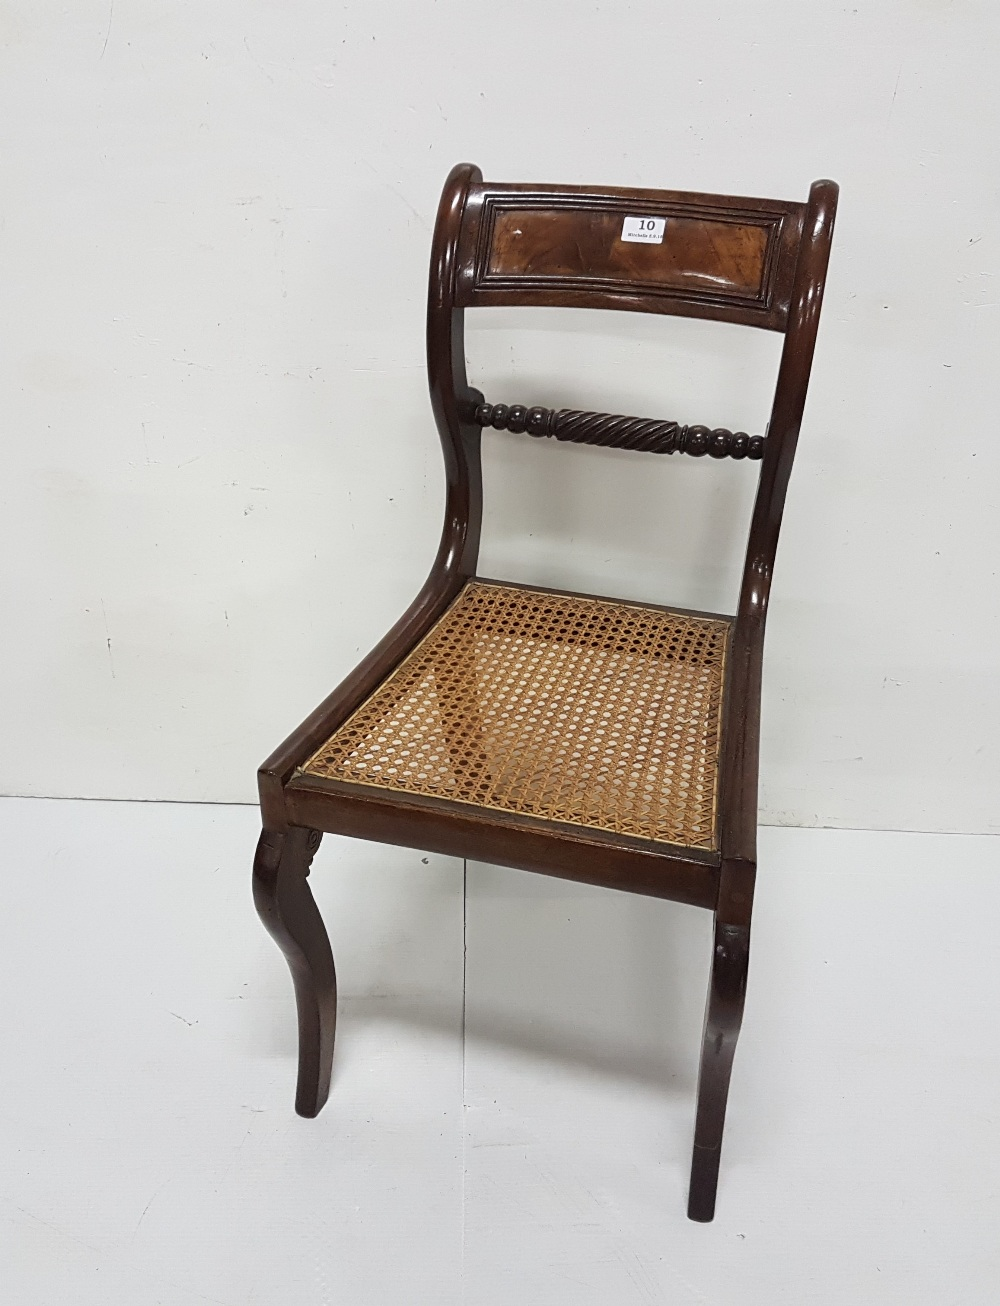 Lot 10 - Regency Mahogany Dining Chair, polished, the curved and scrolled back atop a bergere seat and